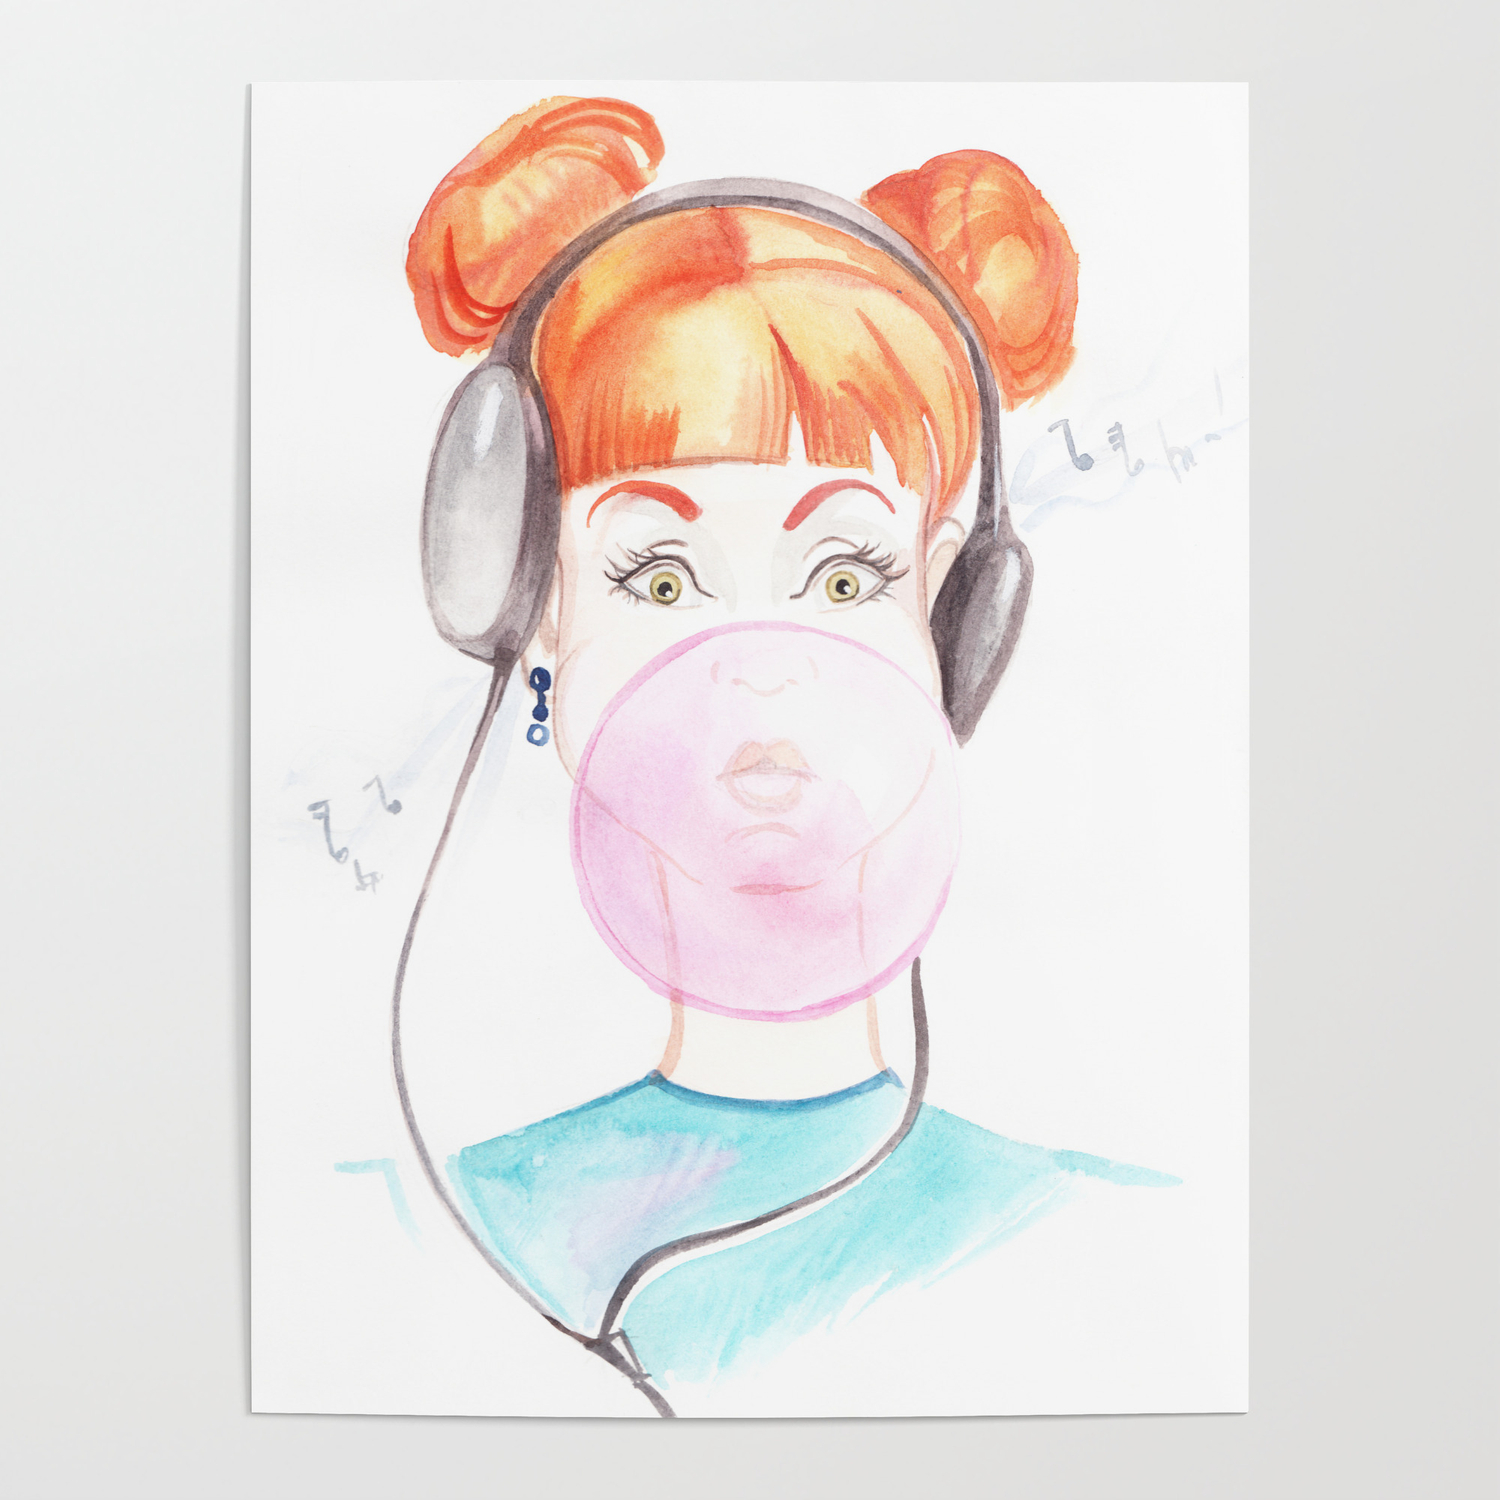 Drawing of a girl with chewing gum and music headphones poster